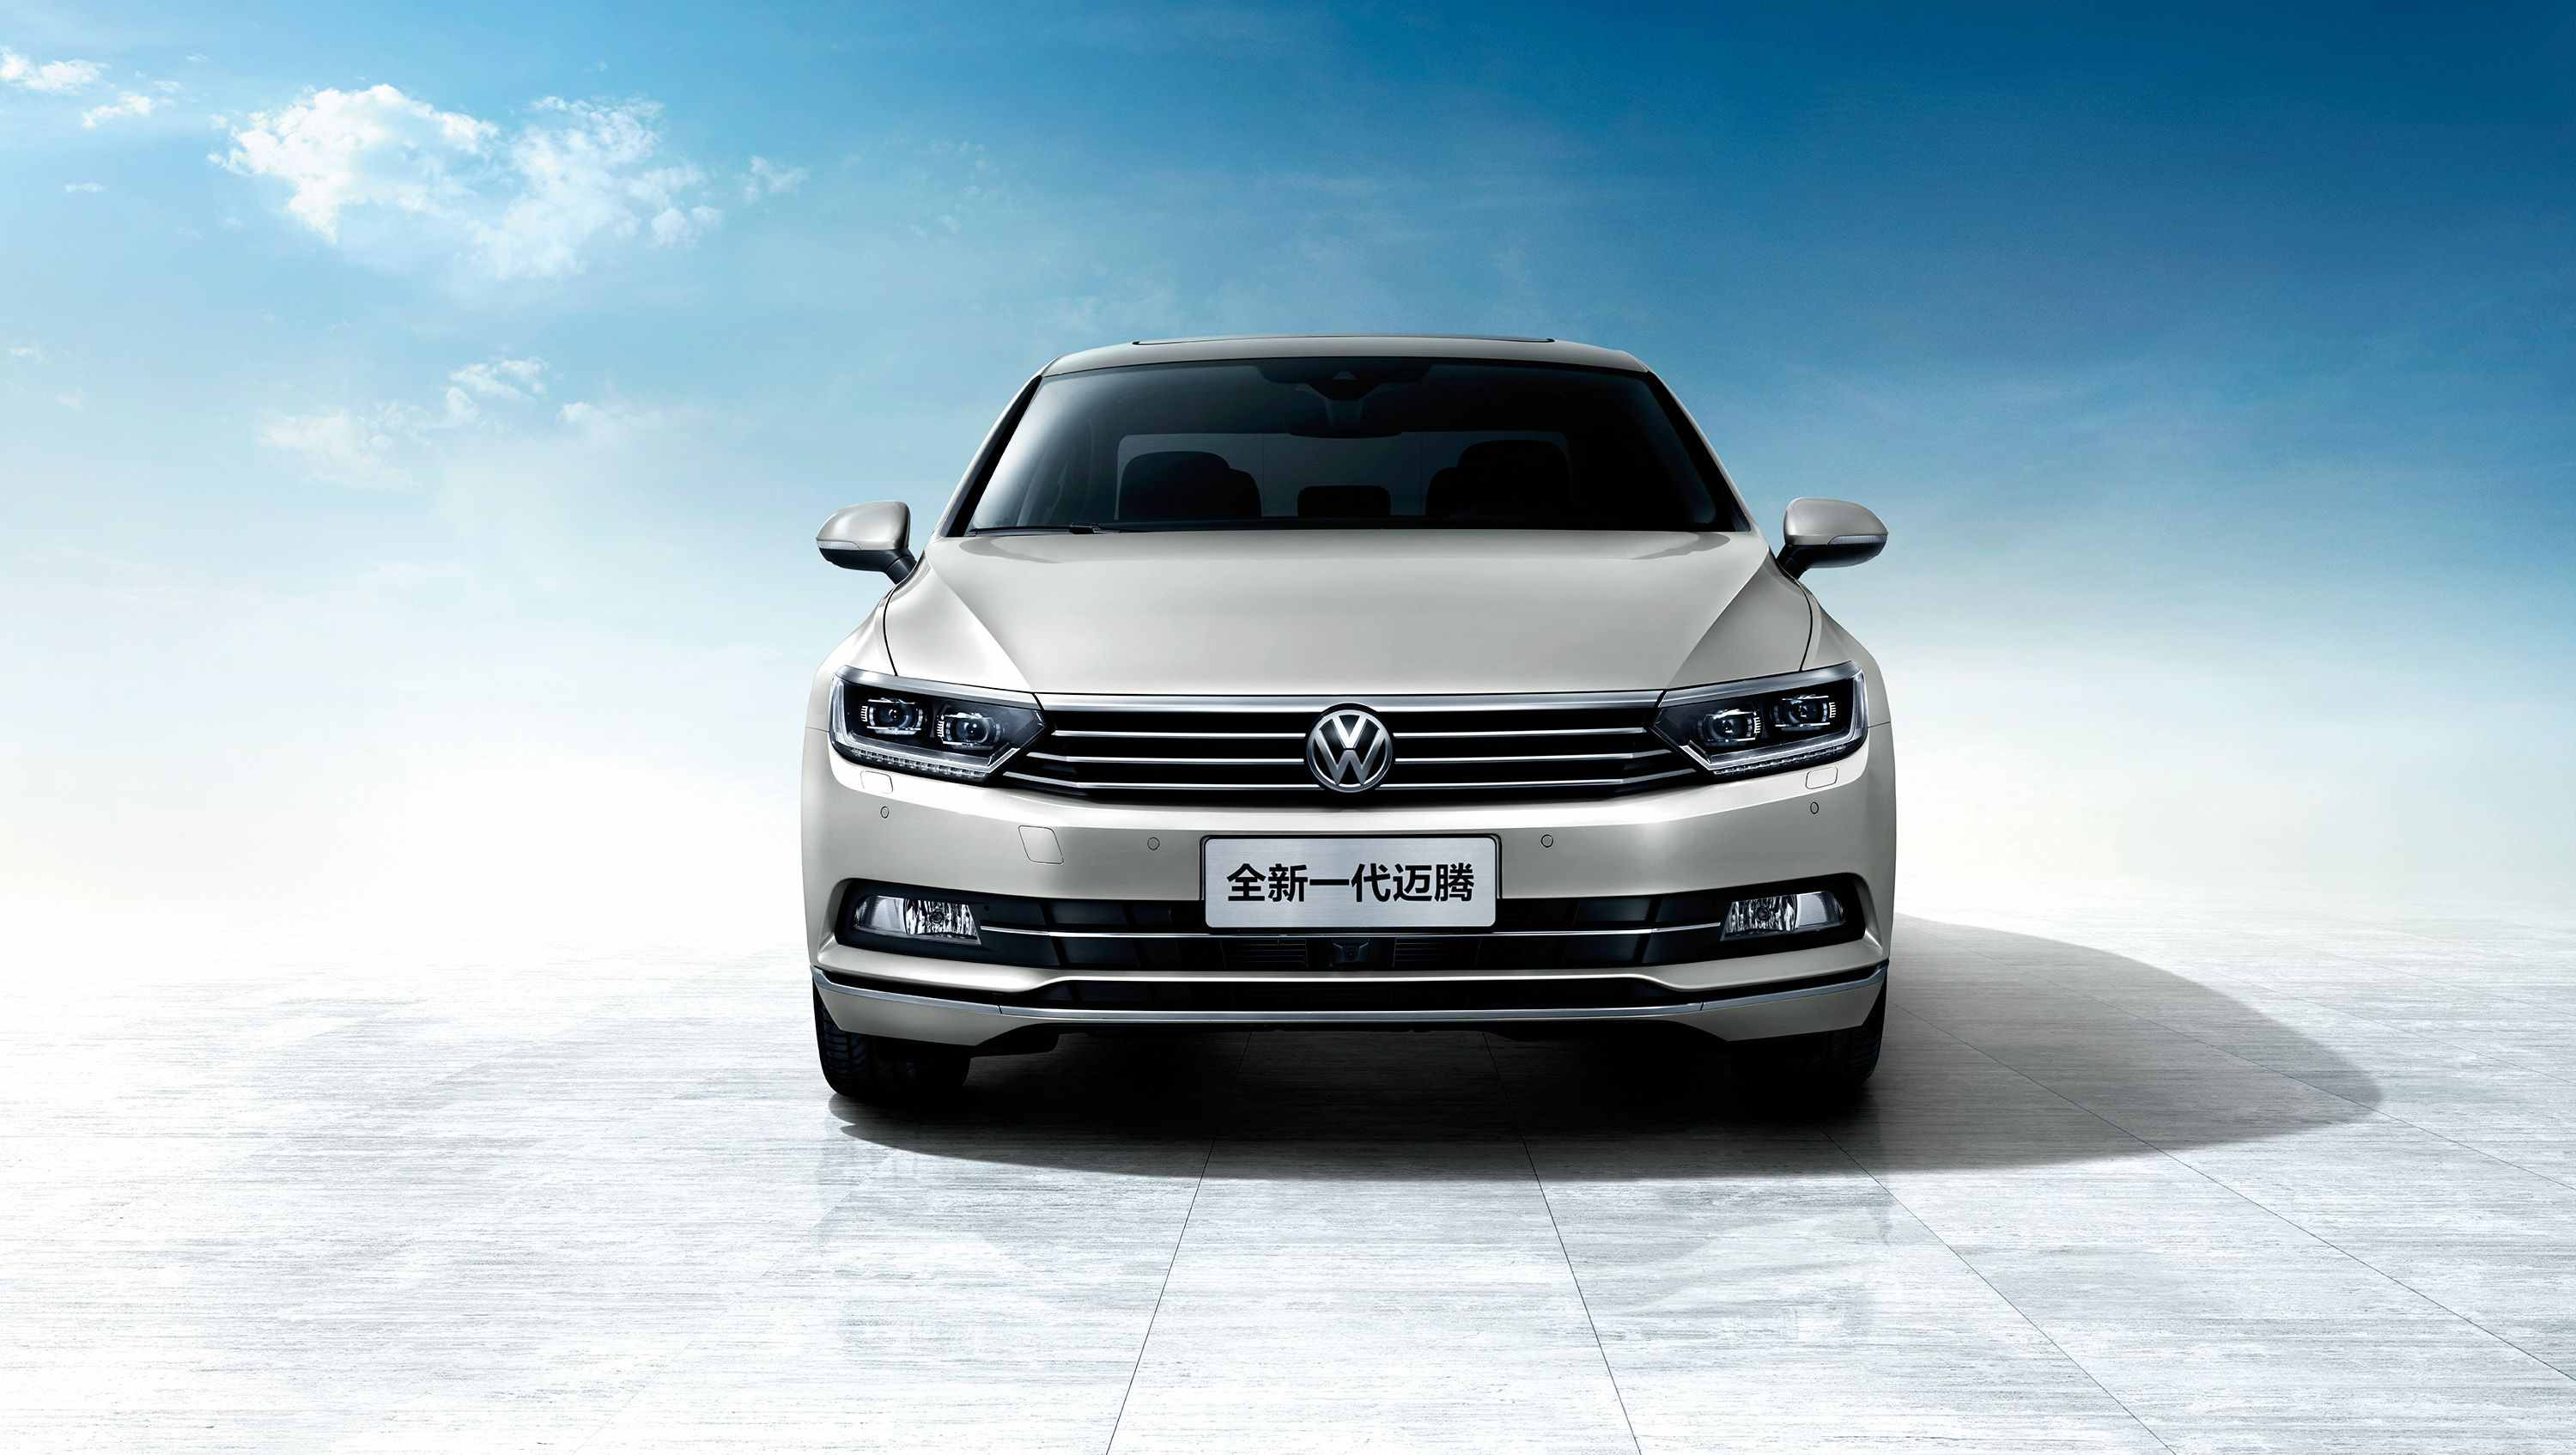 A leading supplier of electroplated automotive parts in China has selected ELIX ABS P2MC from ELIX Polymers for several new projects for FAW-Volkswagen Automotive